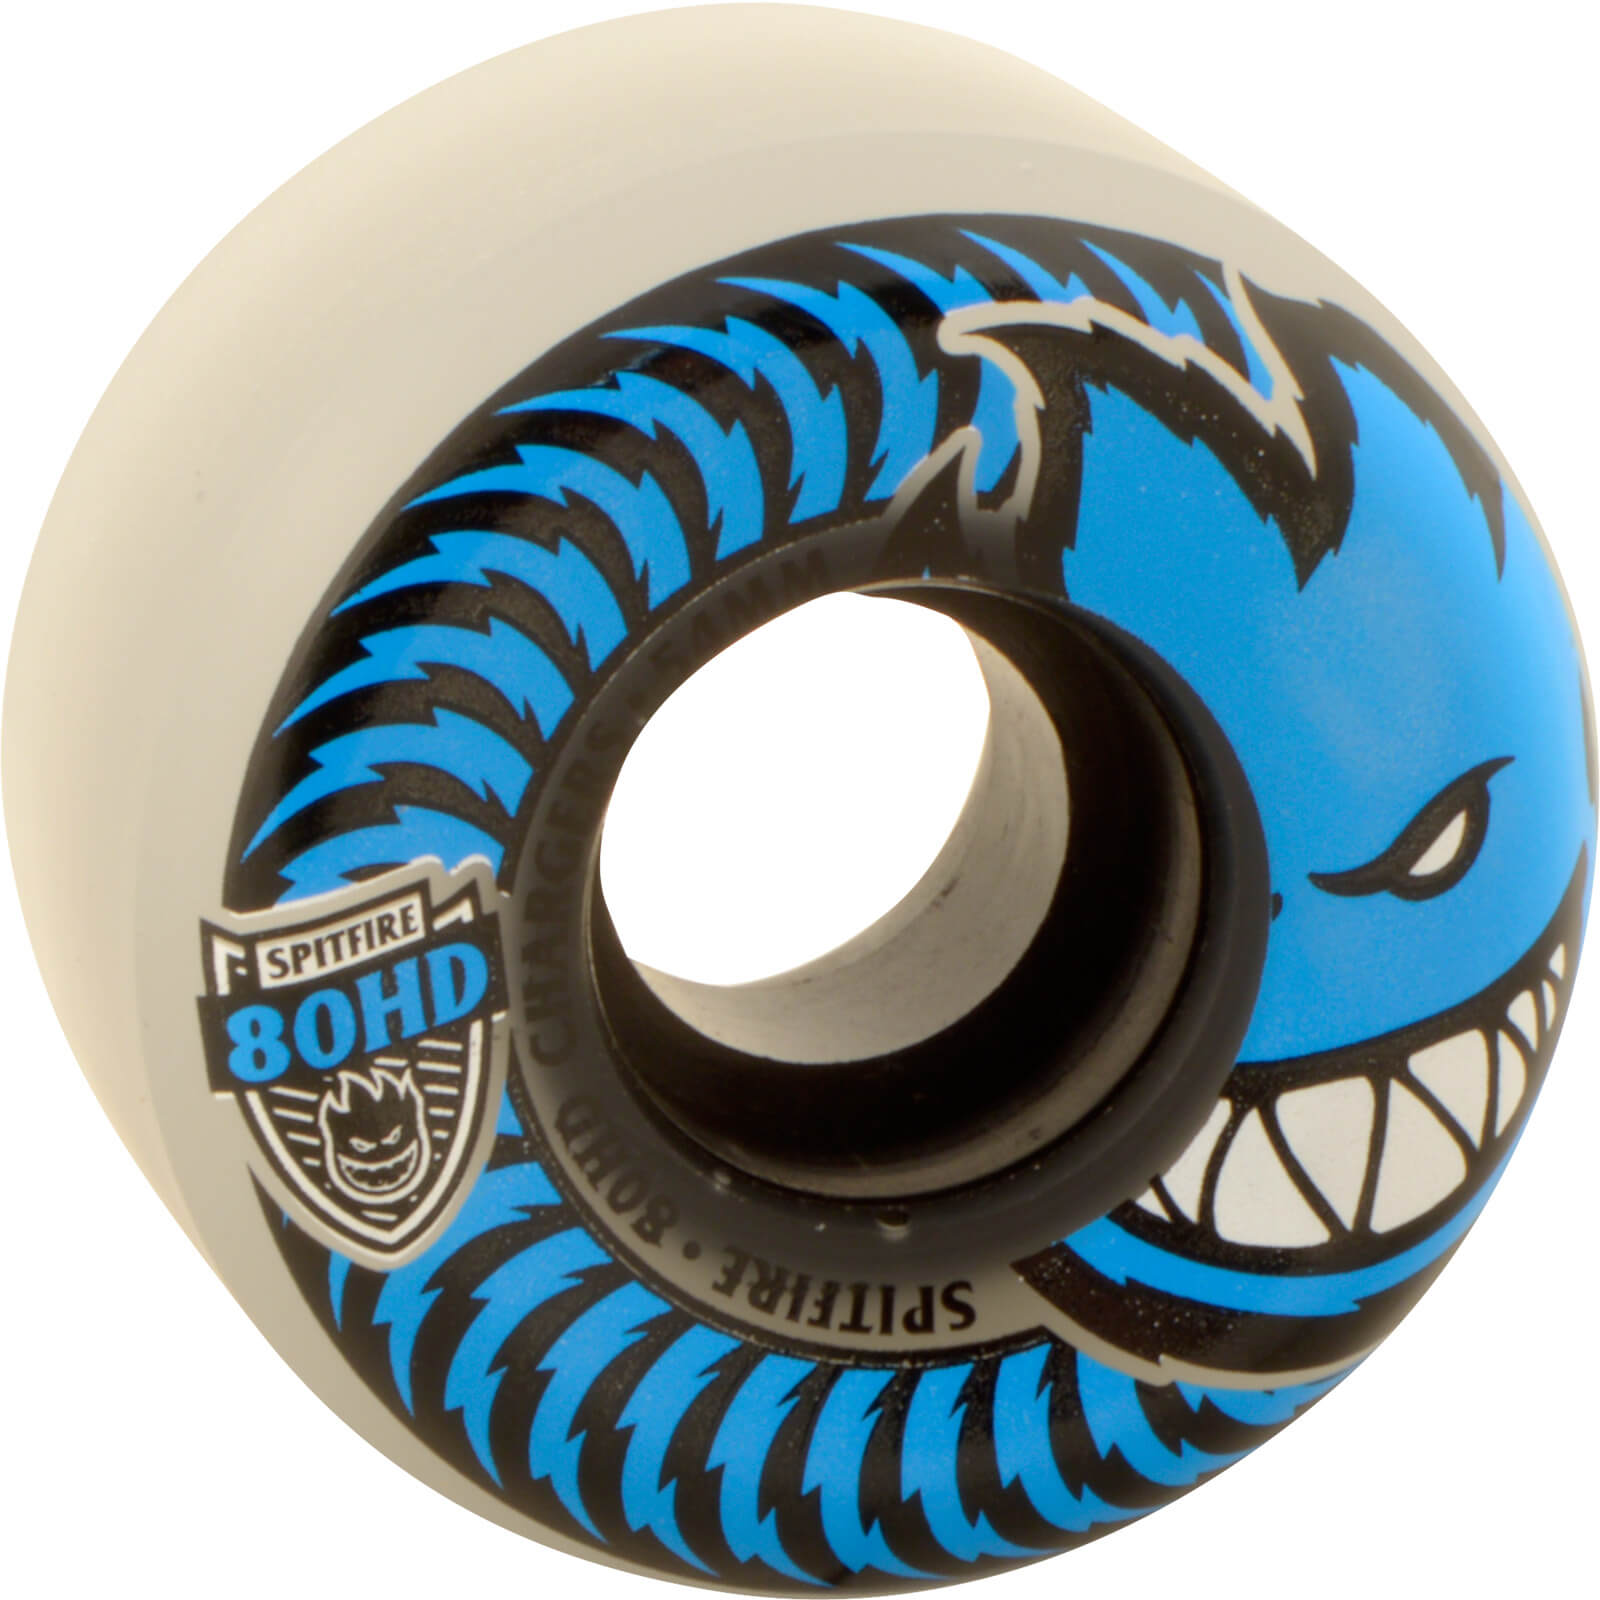 Spitfire Wheels 80hd Charger Conical 54mm - Clear/blue (set Of 4)